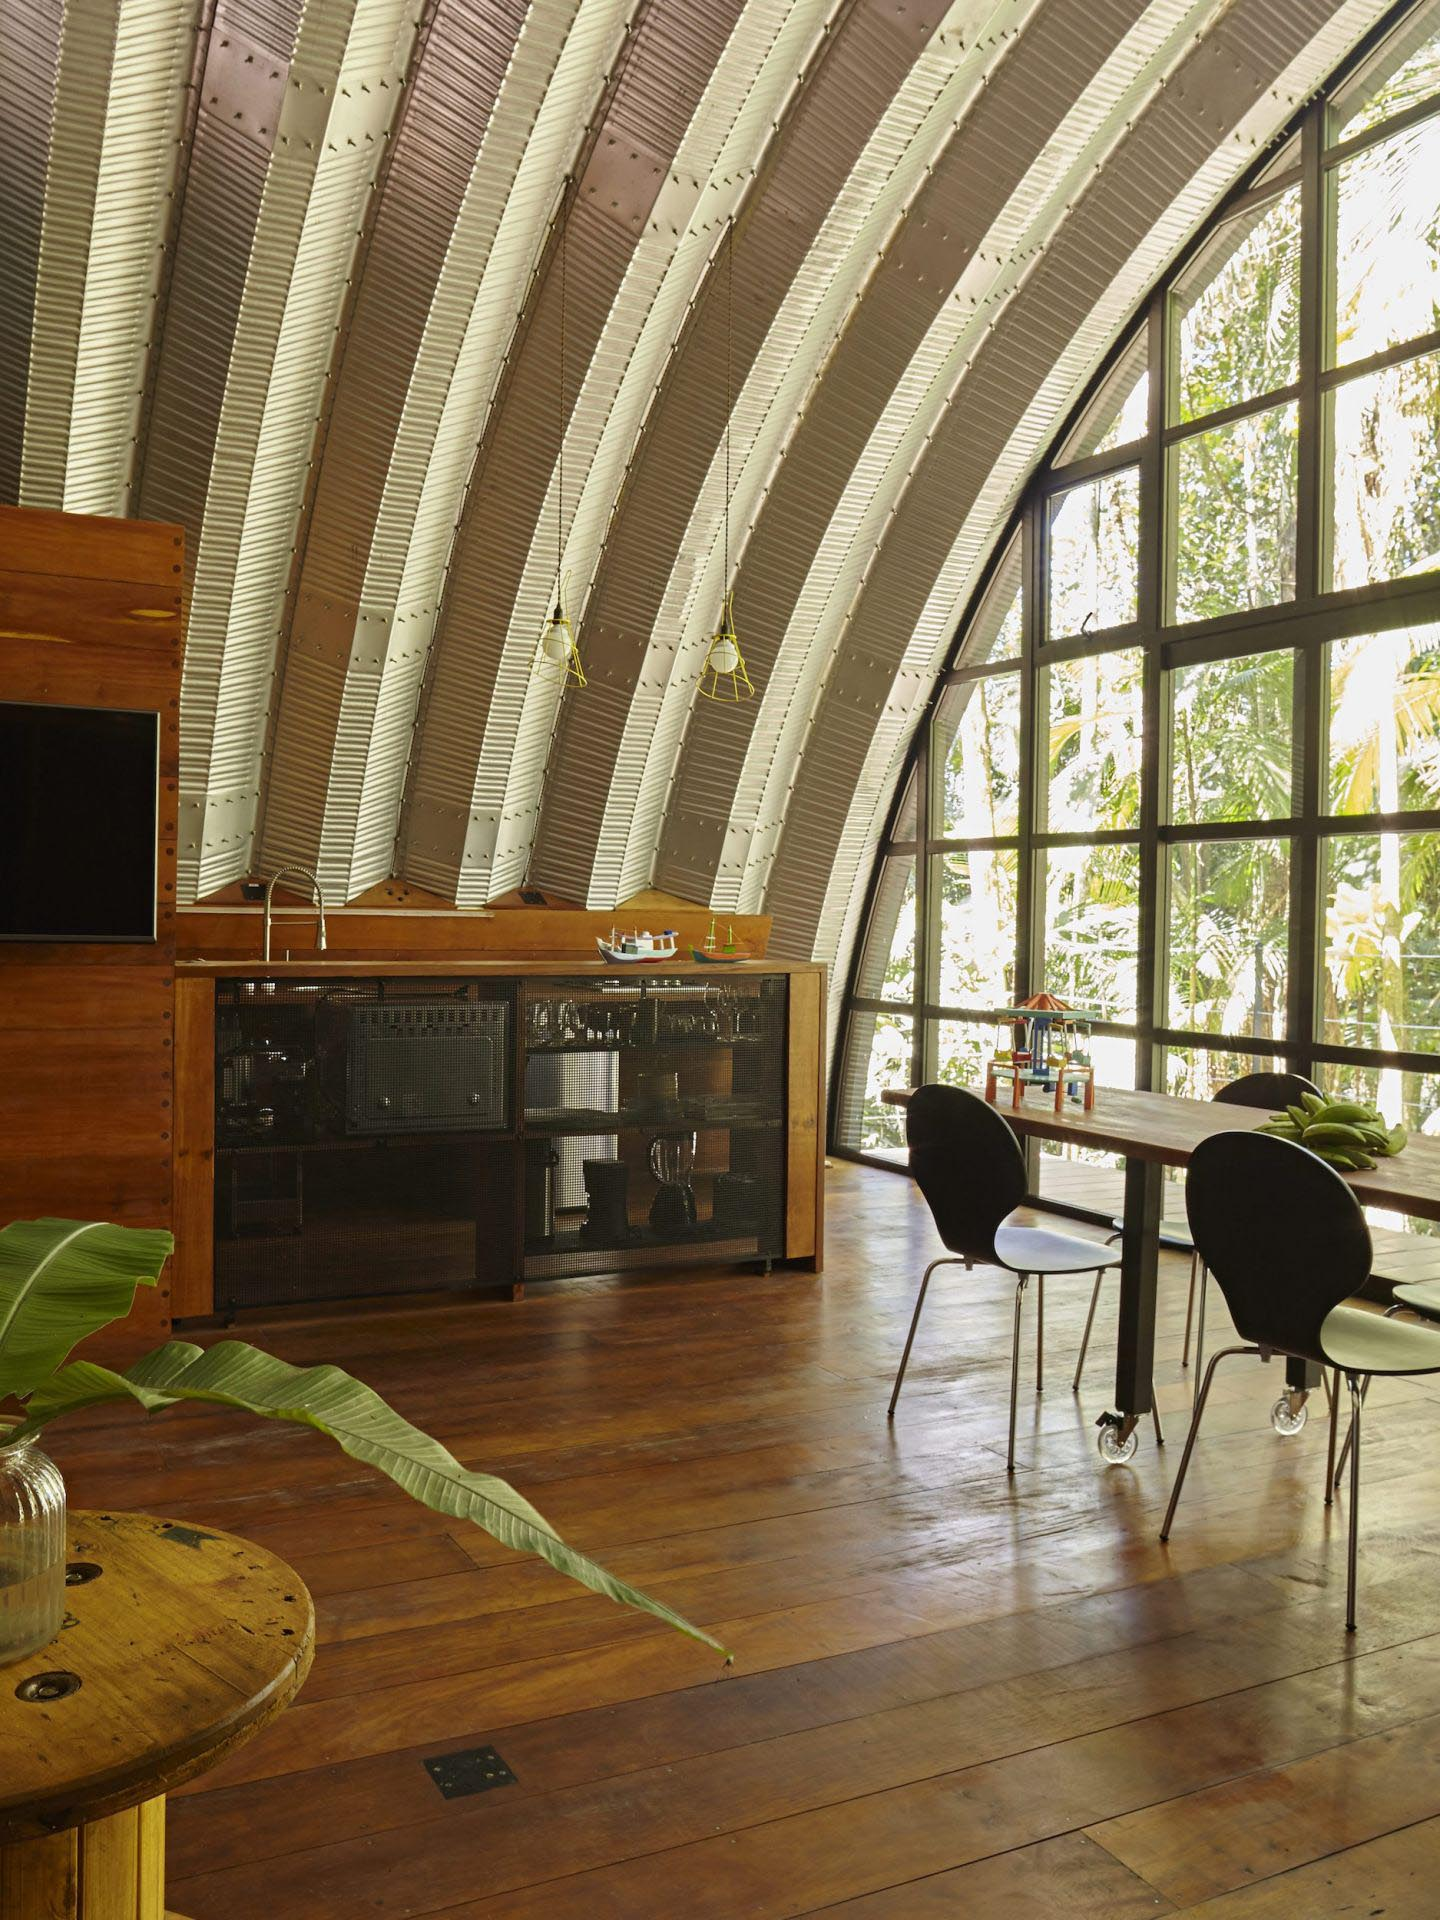 A modern home with an arched metal roof has a small kitchen, and a full wall of windows.